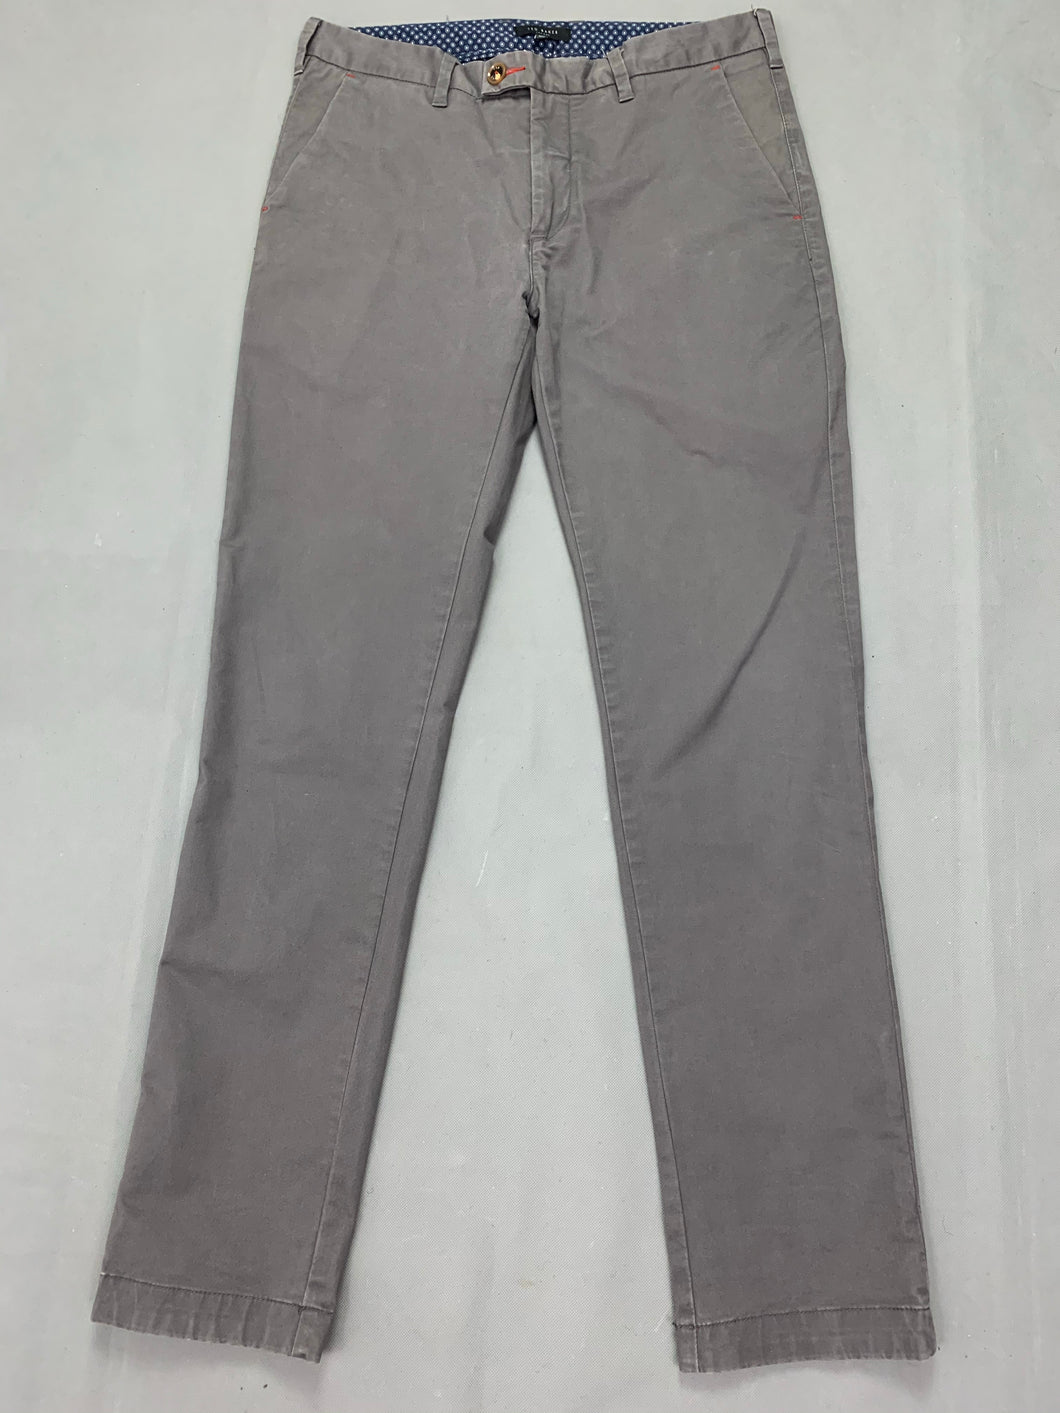 TED BAKER Mens SORCOR Grey Tapered Leg TROUSERS Size 32R Waist 32